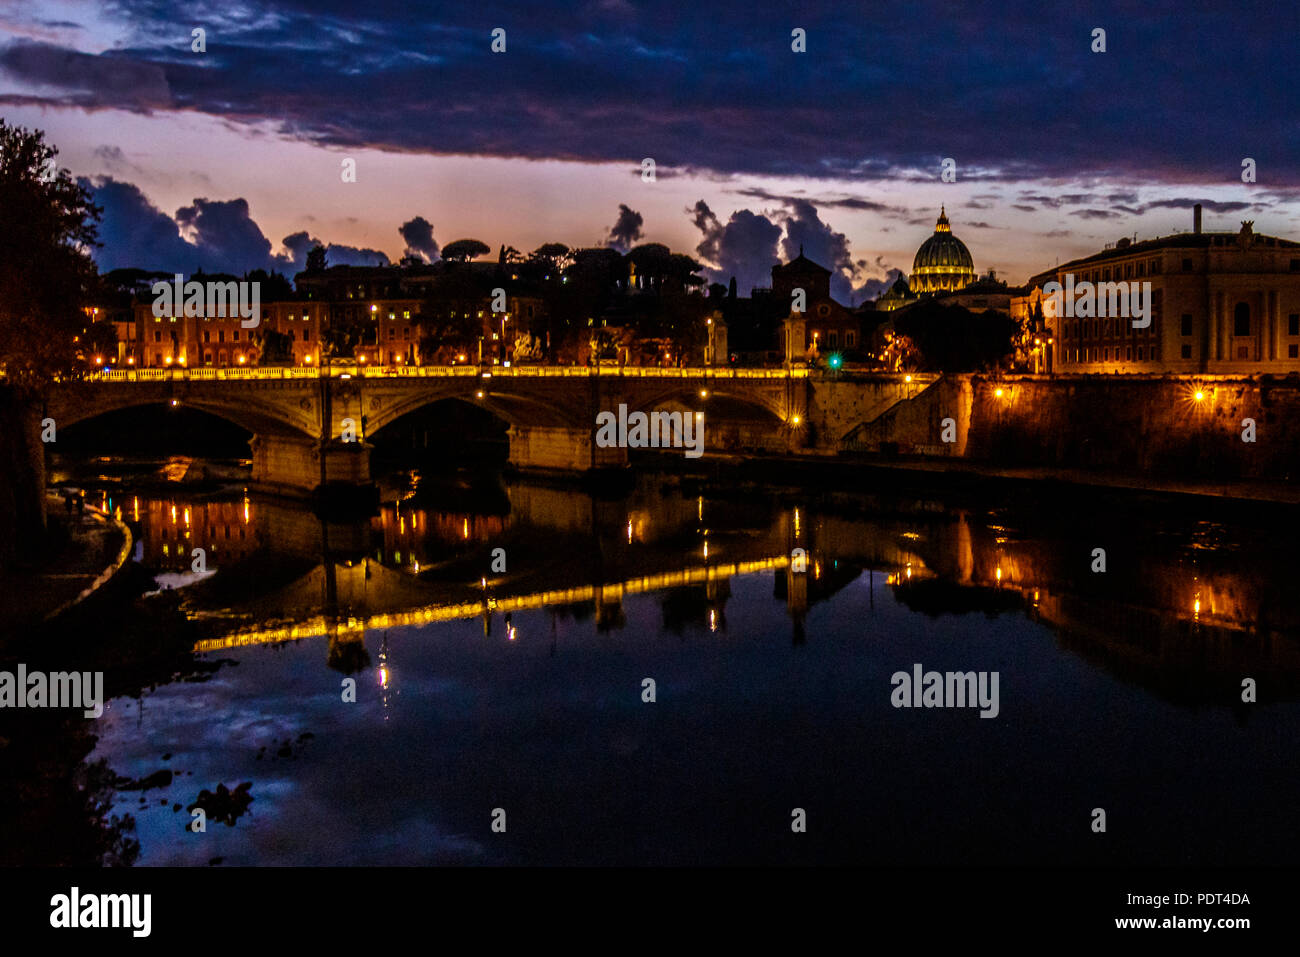 A view over Tiber river with Vittorio Emanuele II bridge and St. Peter's Basilica at Rome, Italy. - Stock Image